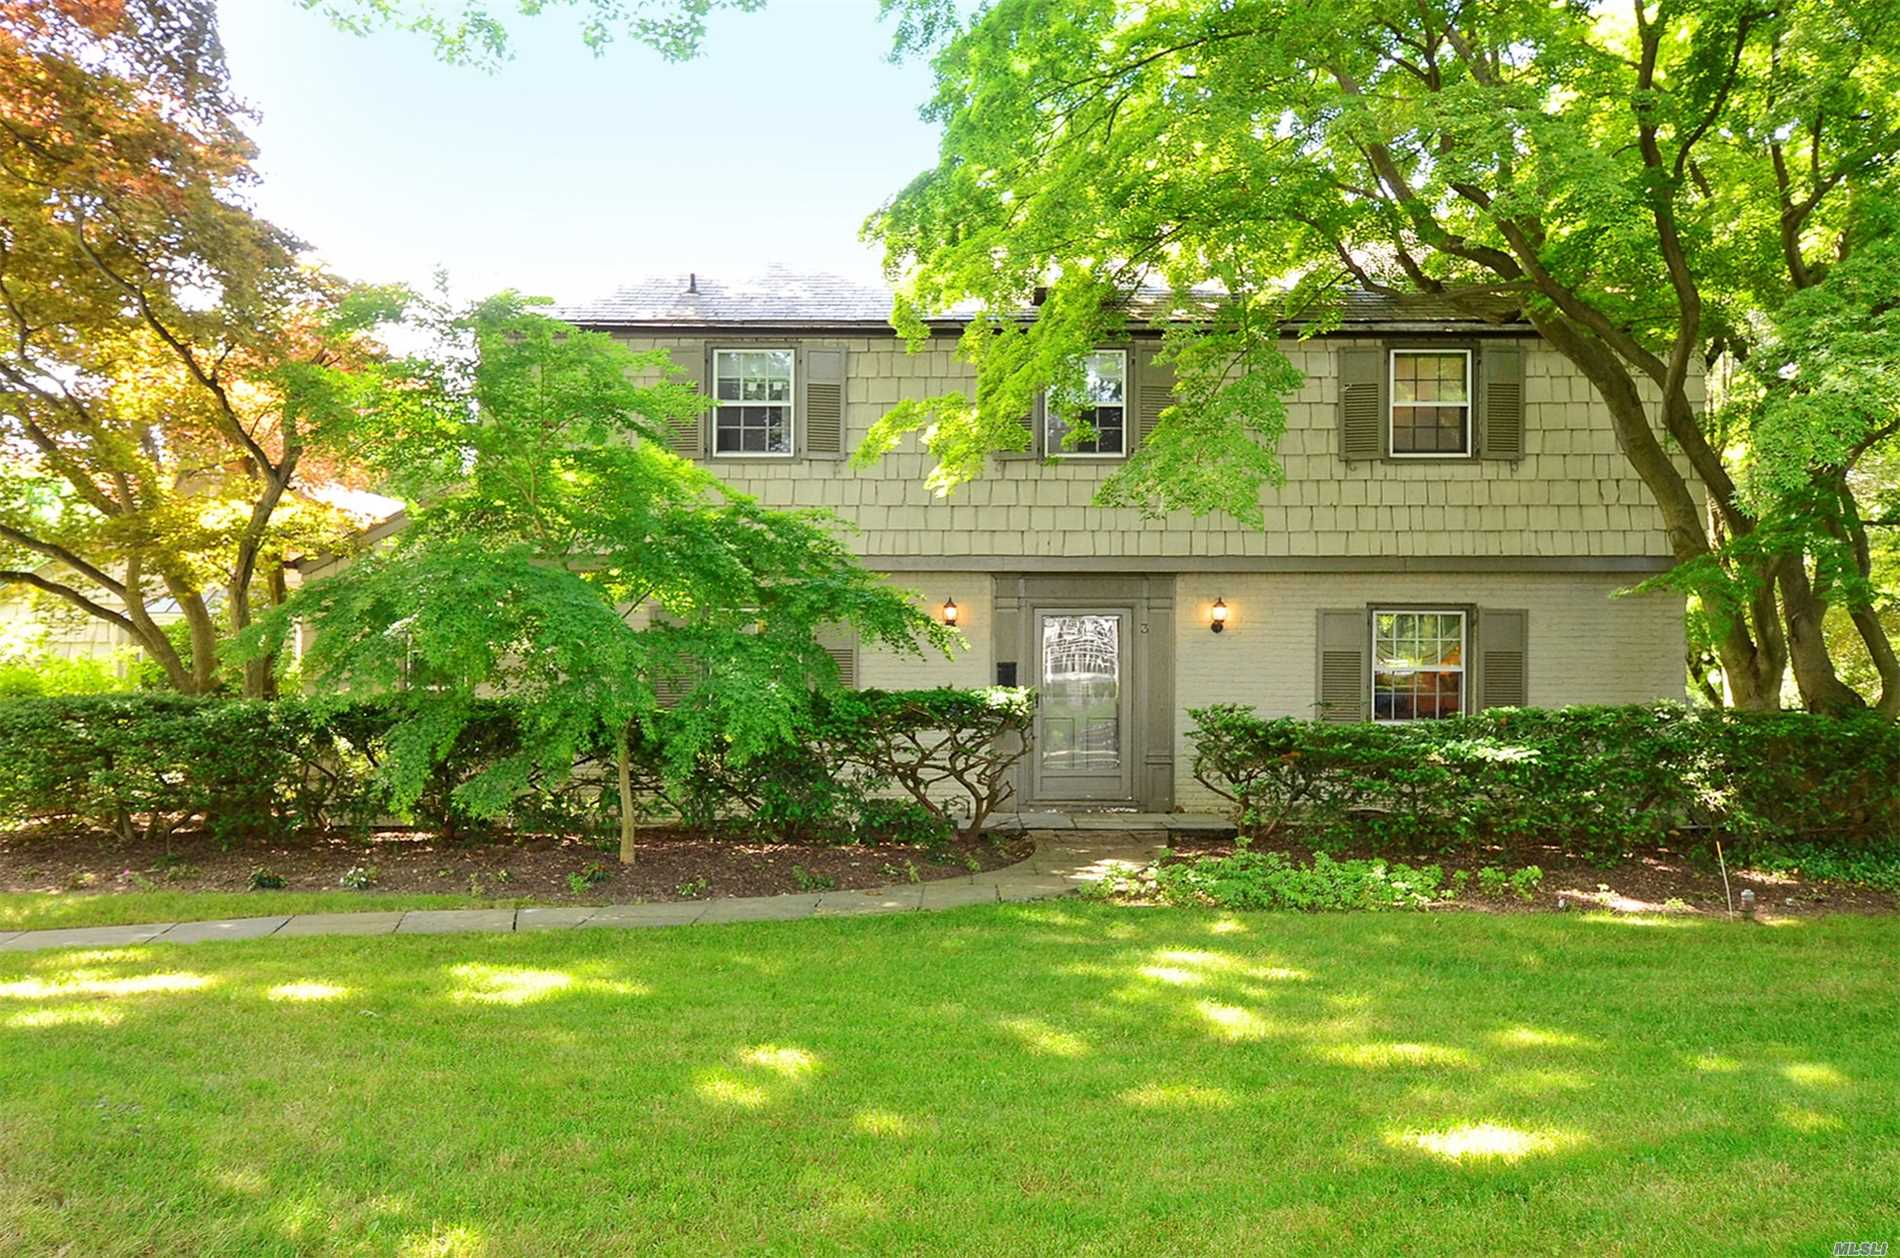 Elegant (Walter Uhl ) Colonial Nestled In A Private Cul-De-Sac In Flower Hill. .57 Of An Acre Of Park-Like Property With Gunite Pool. 4 Bedroom, 3.5 Bath. Charming Throughout. Salem Elementary. Two Separate Lots.